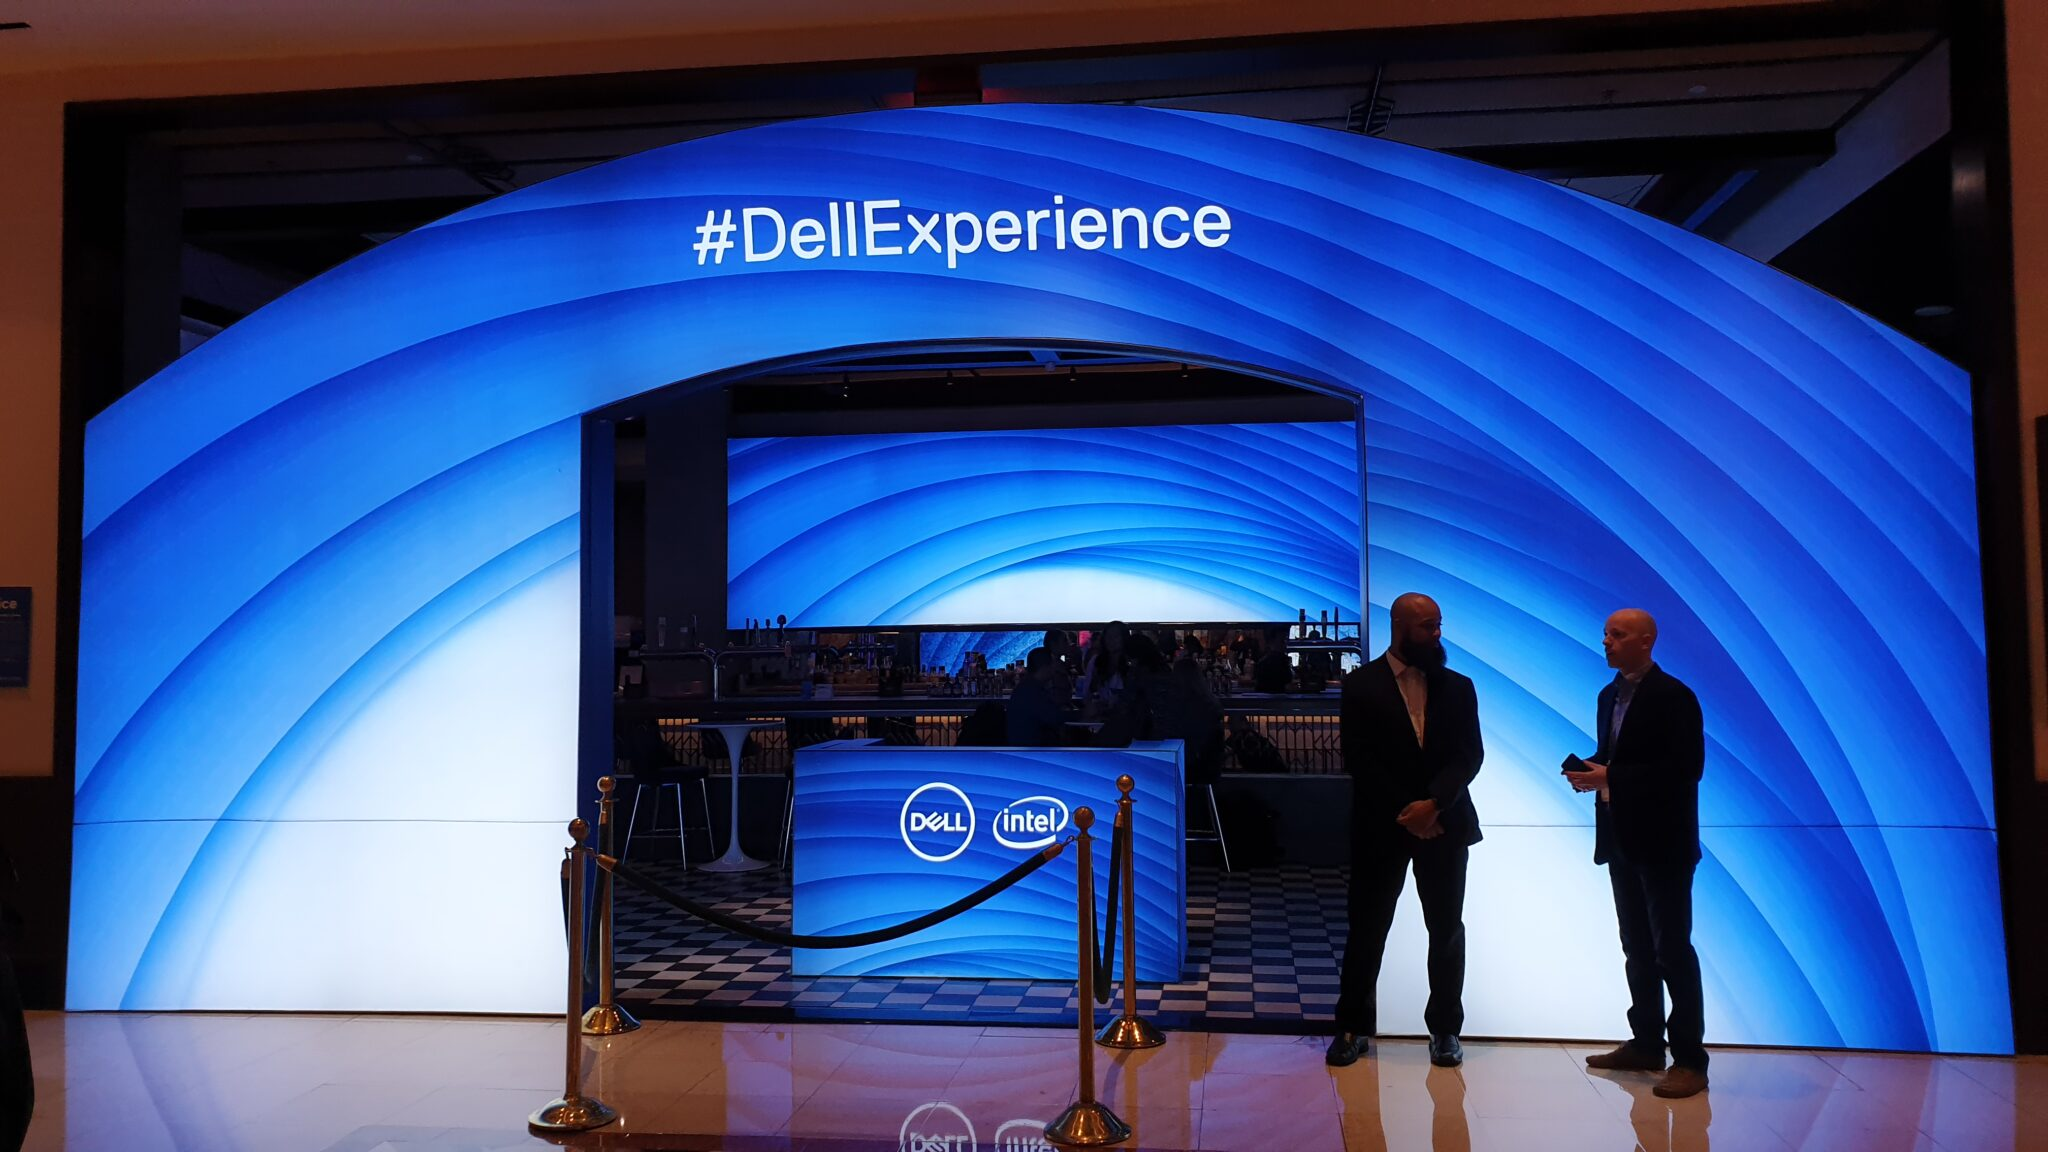 Dell experience